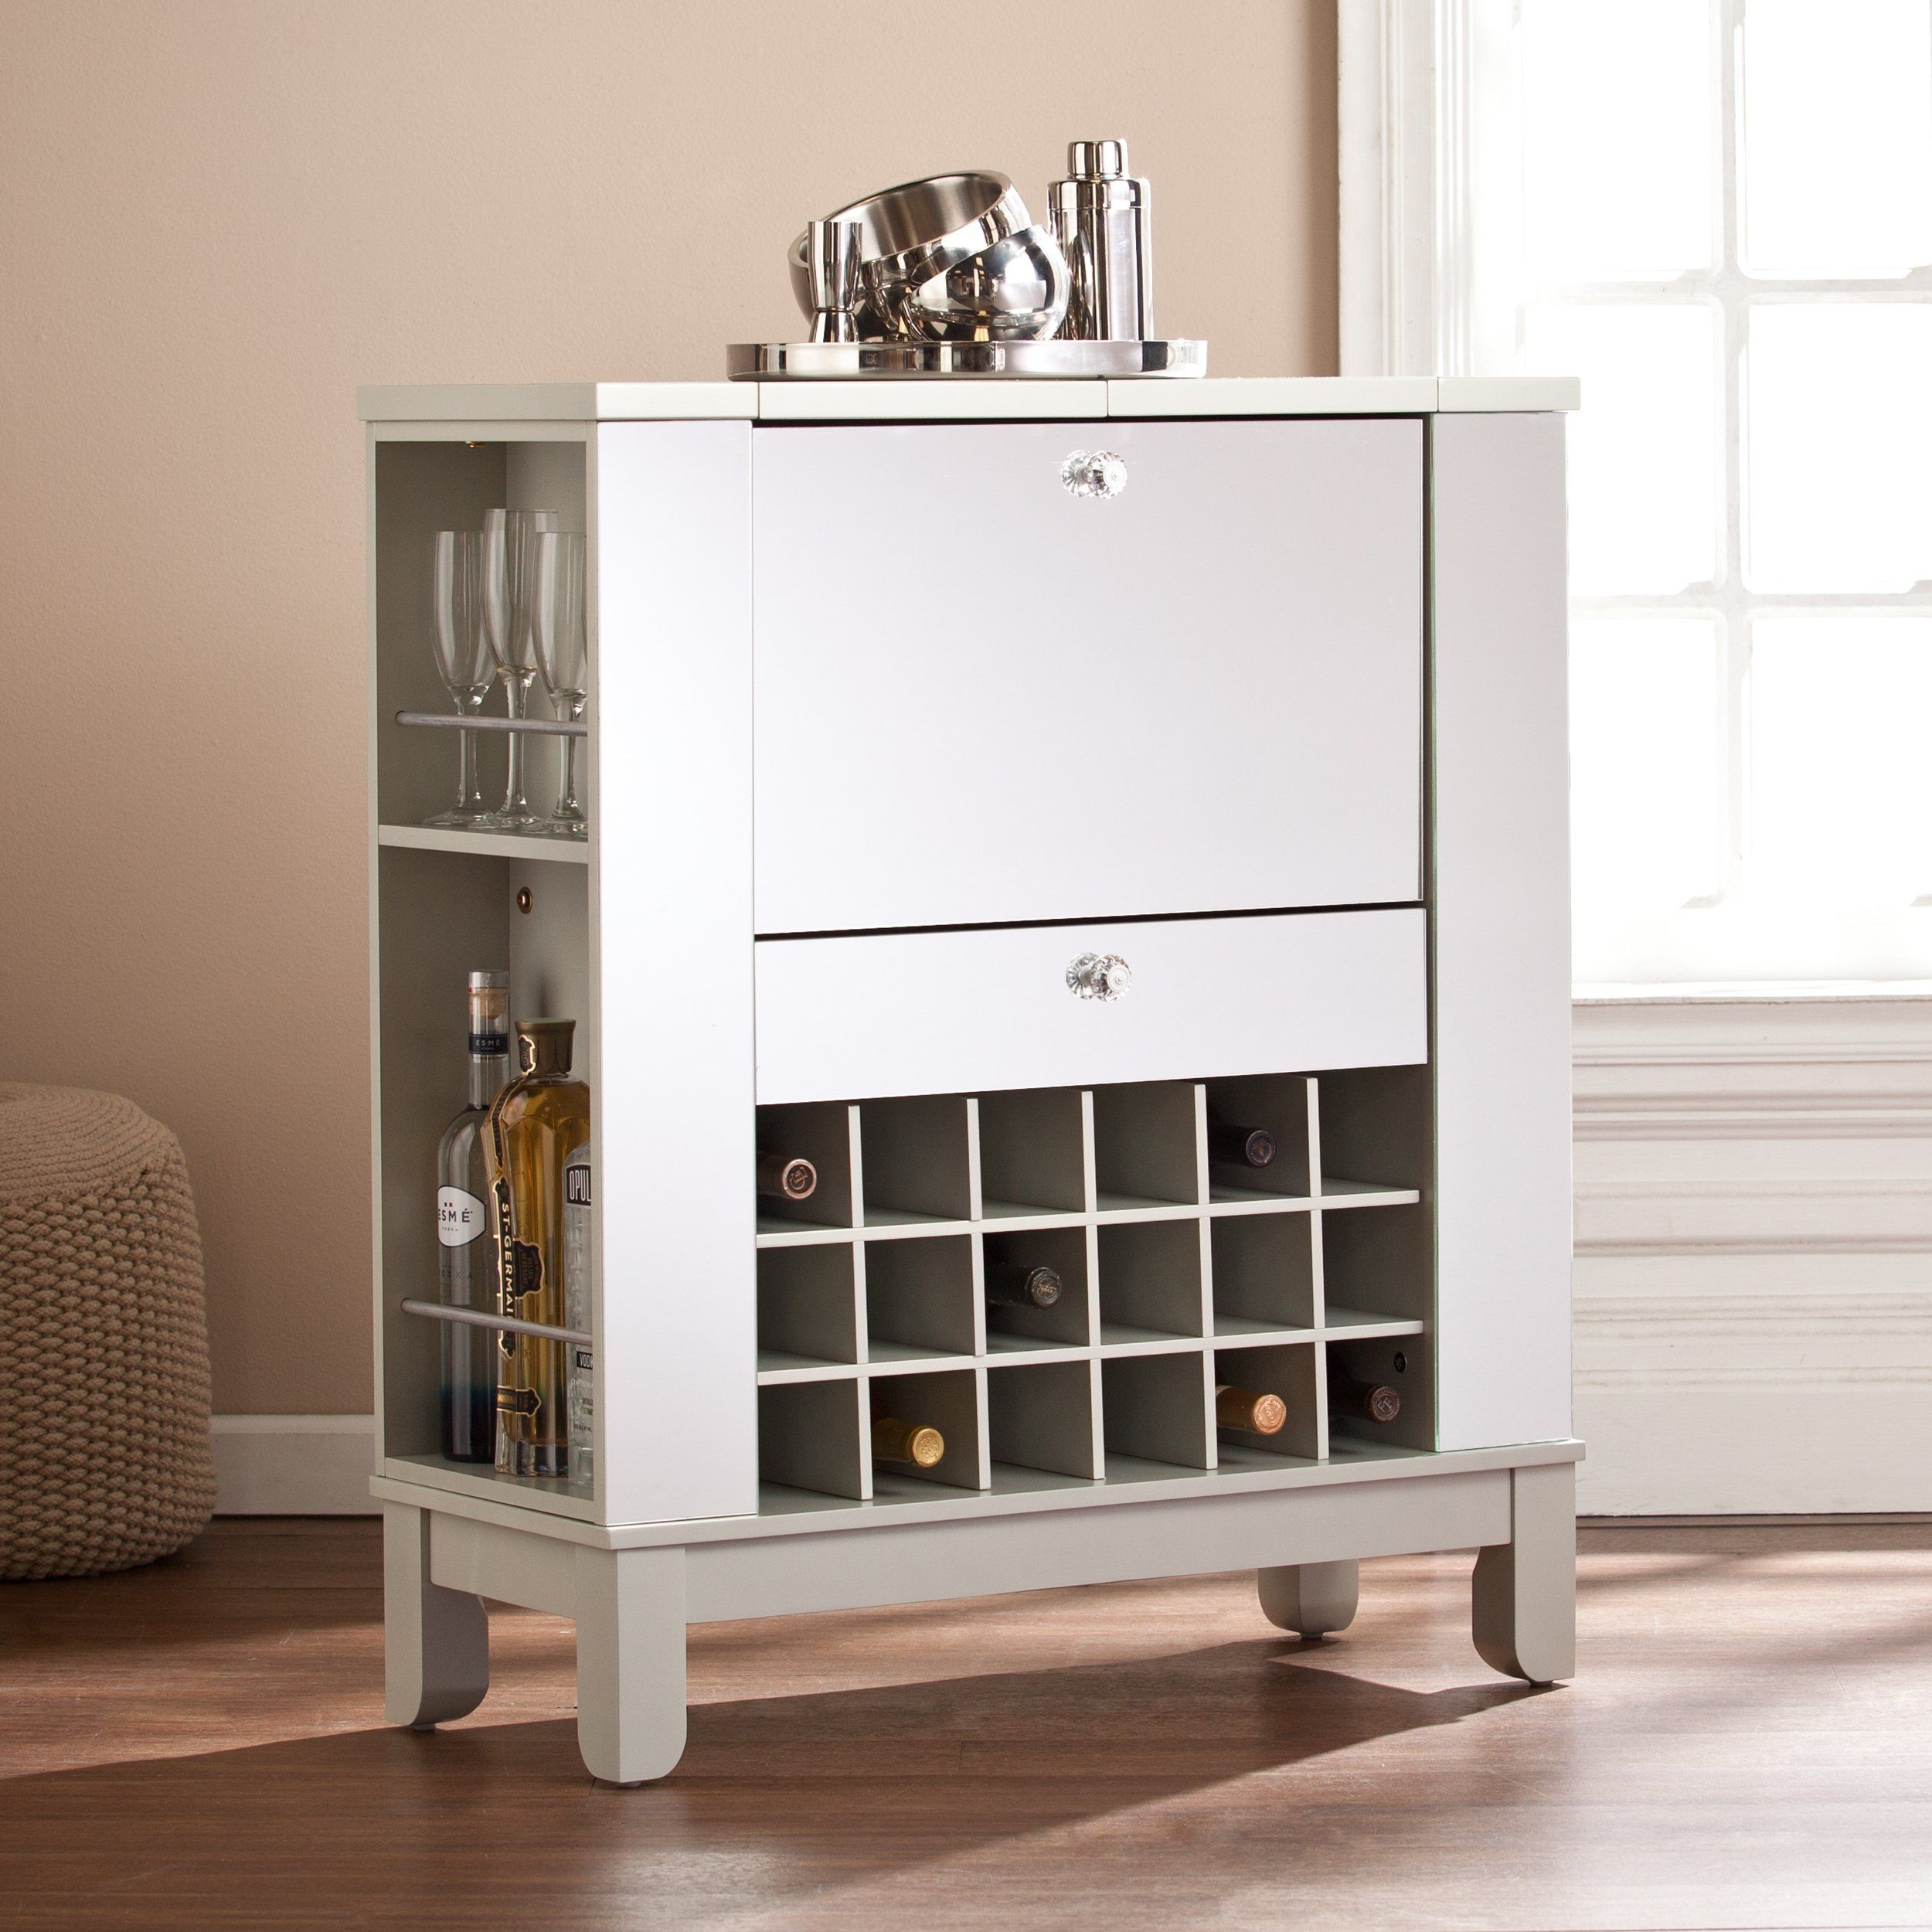 Barrett Bar Cabinet